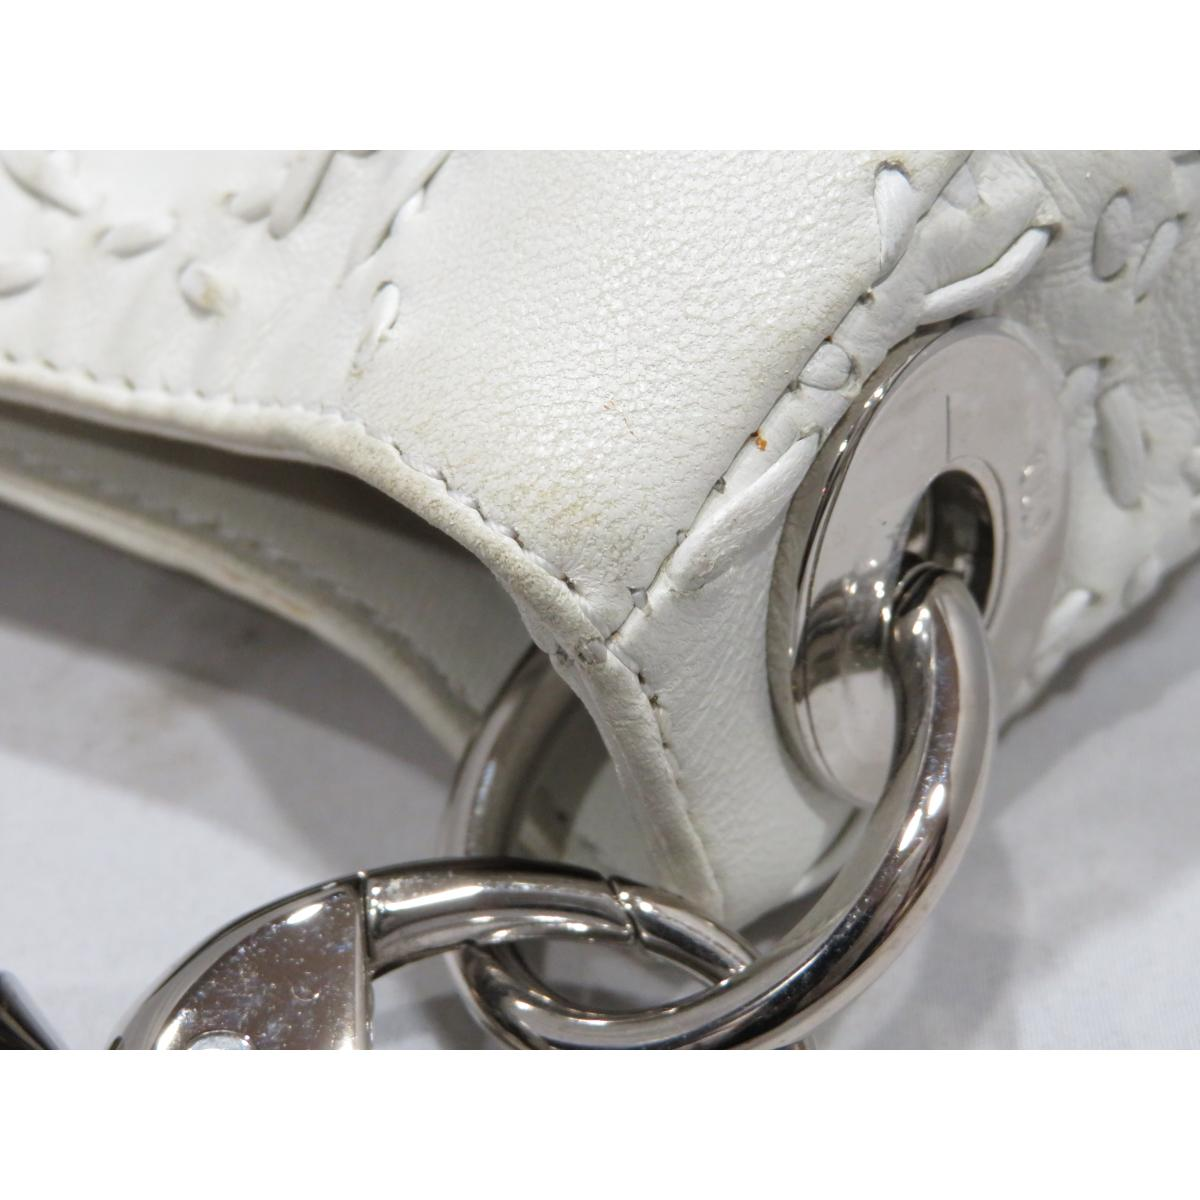 6c79c4f91b9e BRANDOFF  Authentic Christian Dior Shoulder Bag lady leather White ...